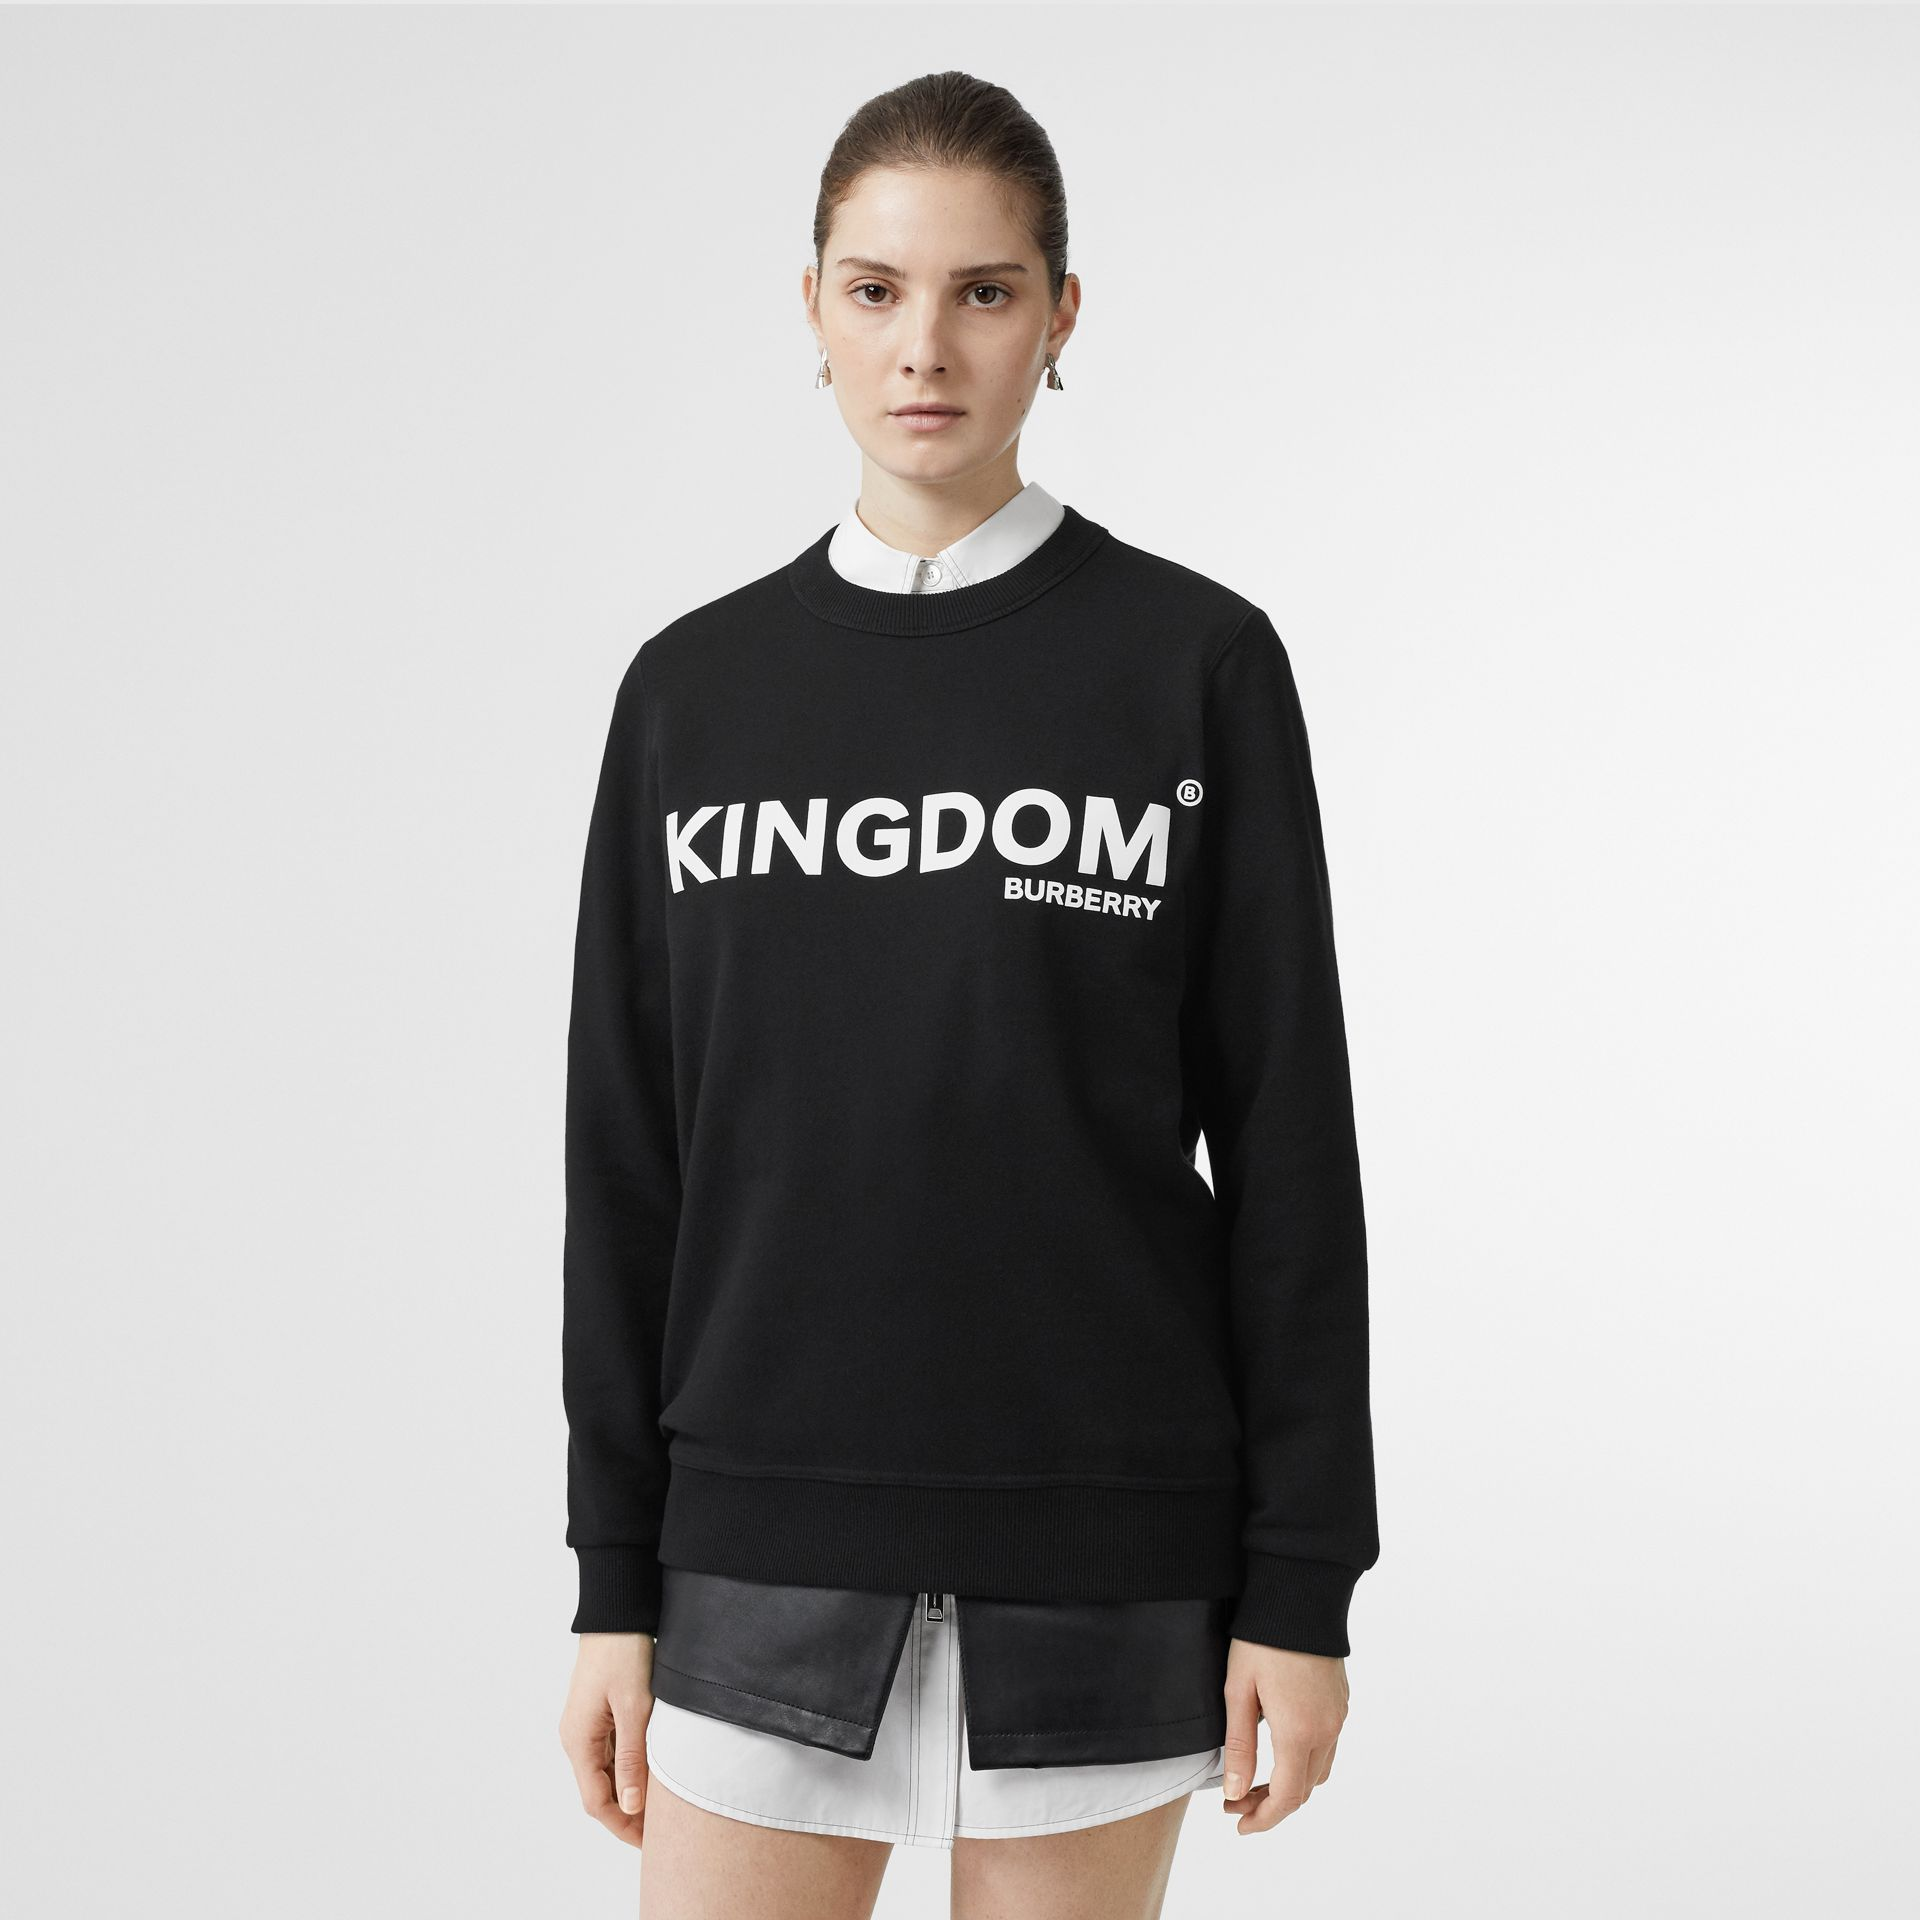 Kingdom Print Cotton Sweatshirt in Black - Women | Burberry - gallery image 4